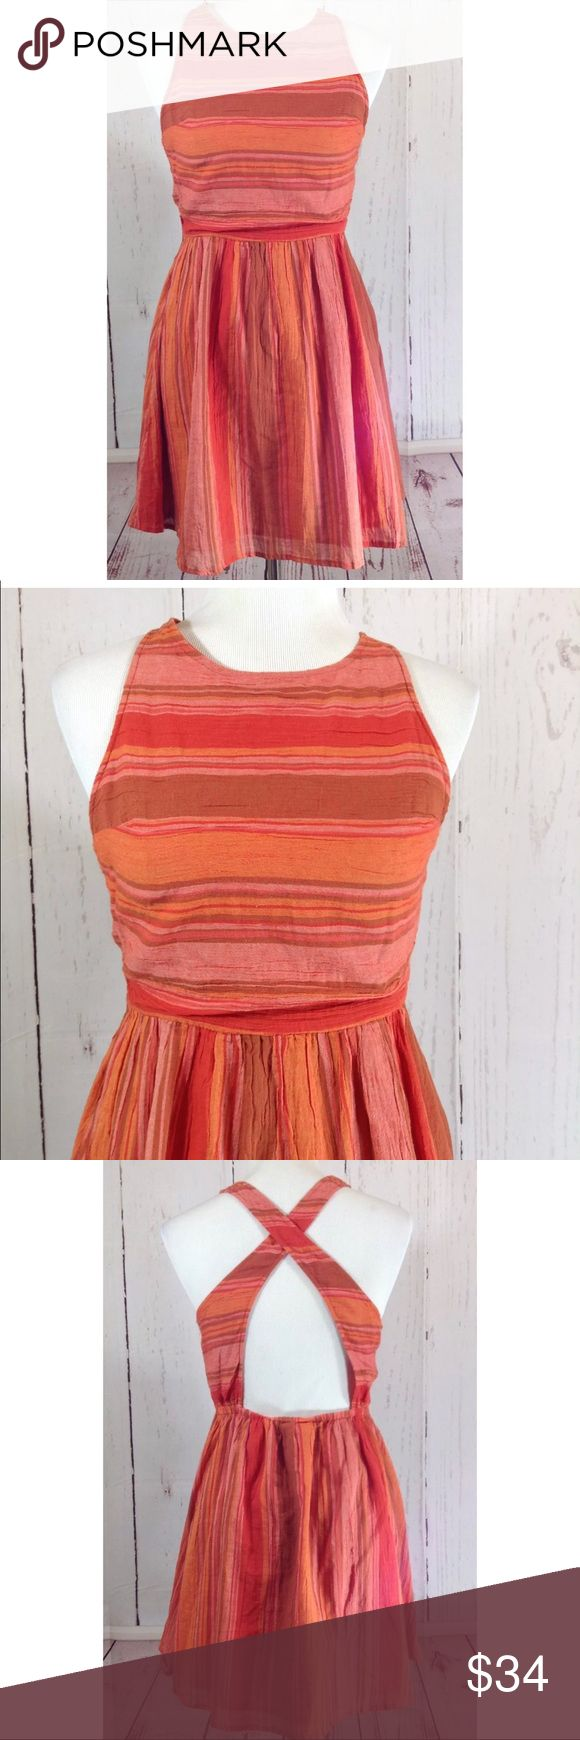 "NWT Roxy Criss Cross Back Dress Size Medium NWT Roxy Size Medium Dress Orange Stripe Criss Cross Open Back Cotton Gauze Fully lined  Shown on a medium size mannequin  Approximate flat measurements:  Chest: 16"" Waist: 13.5"" Hips: 21.5"" Length: 34"" Roxy Dresses Backless"